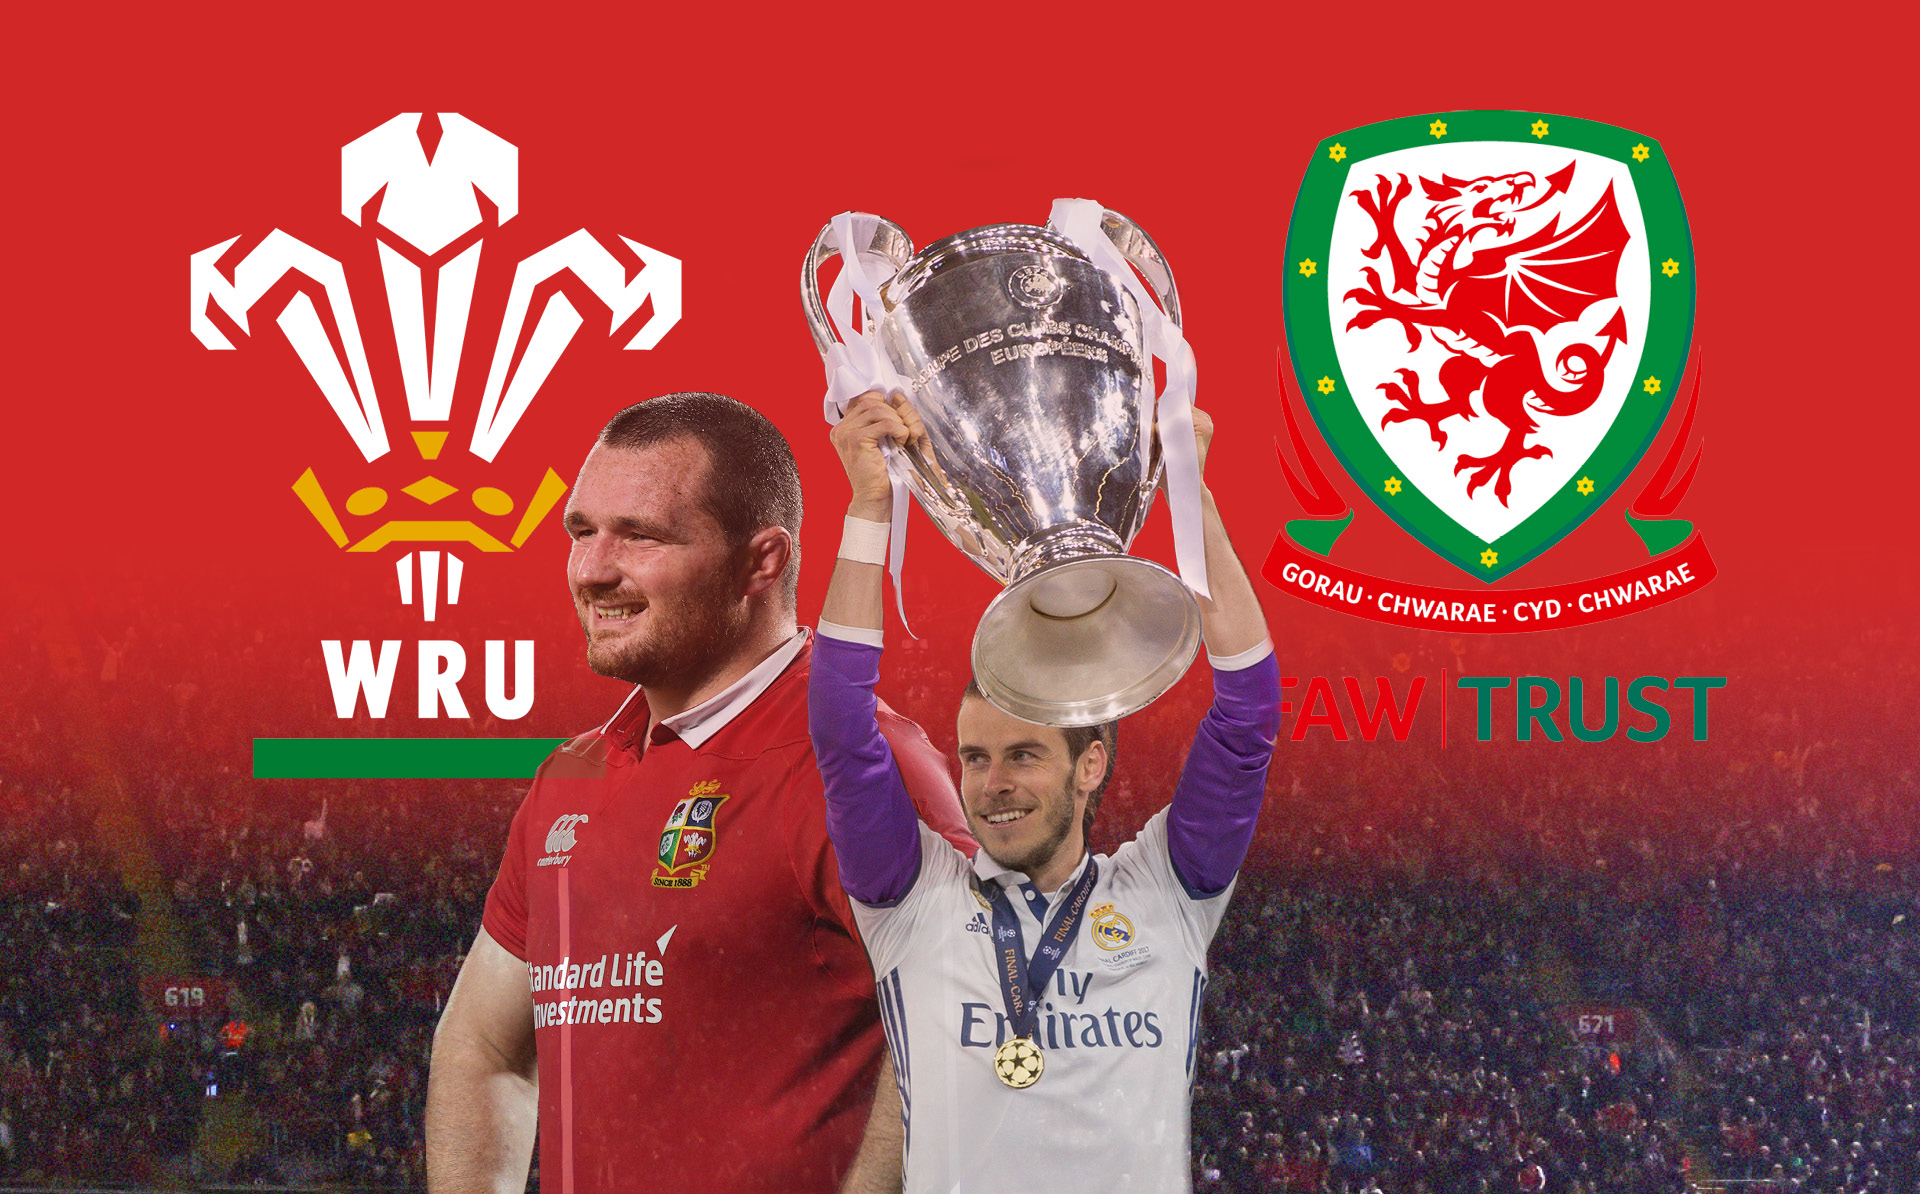 FAW Trust and WRU  join forces to inspire more kids to play sport